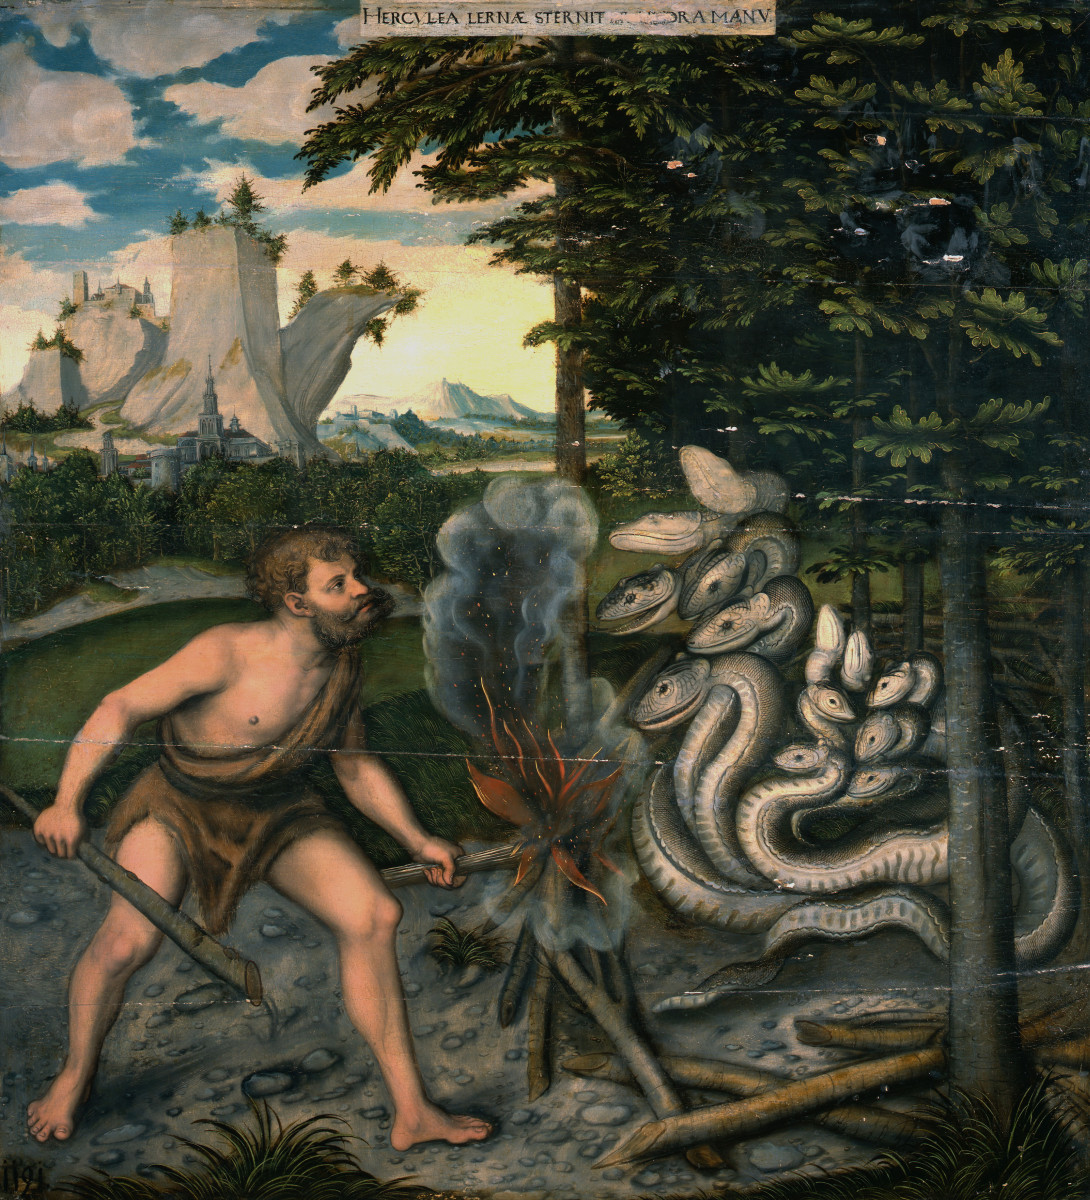 Hercules and the Hydra (after 1537) by Lucas Cranach (1472-1553). The second of the 12 Labours of Hercules was to kill The Lernean Hydra.